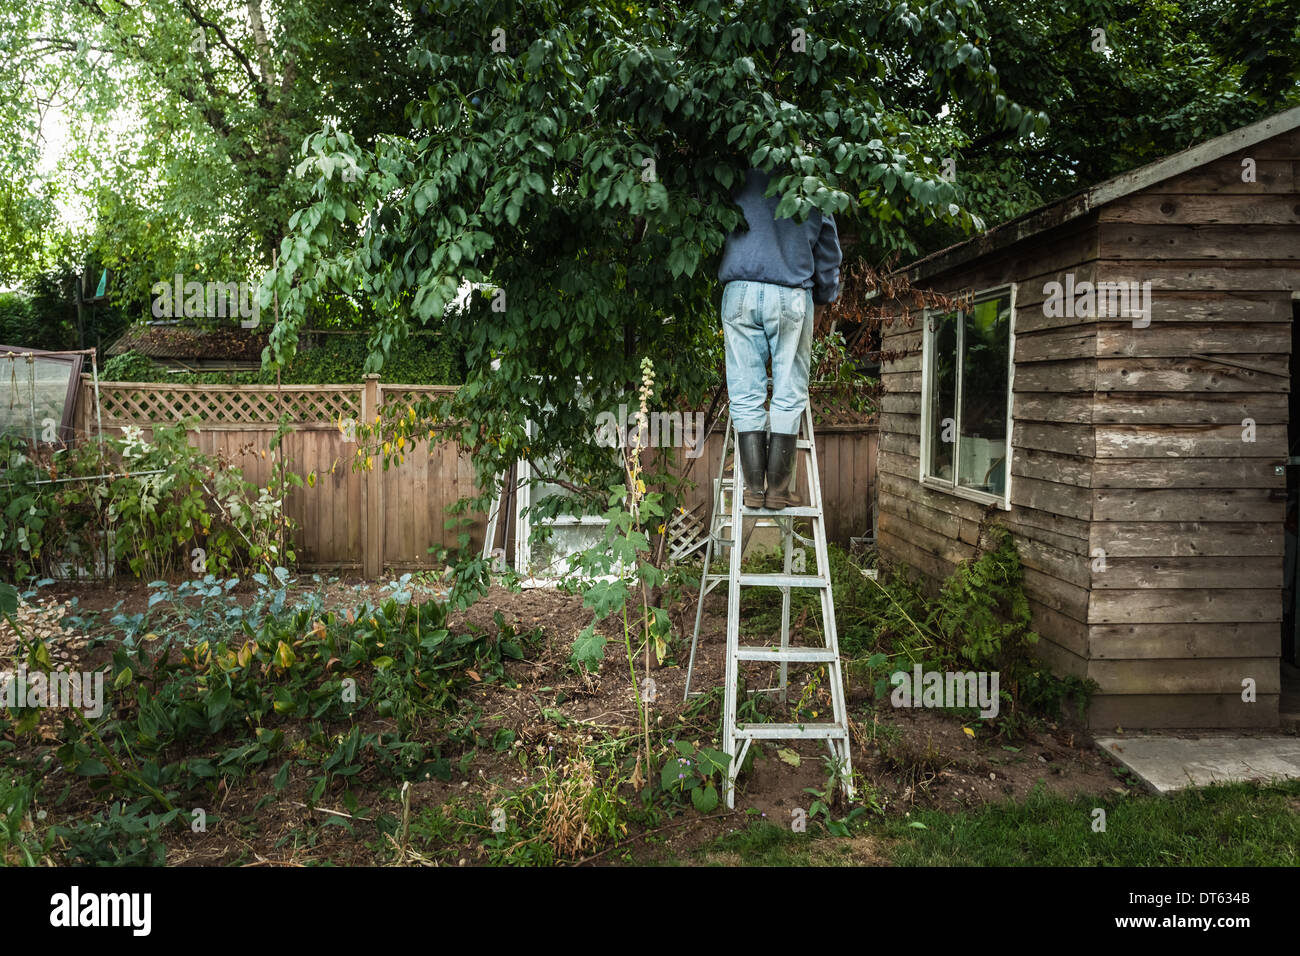 Man on ladder in tree - Stock Image